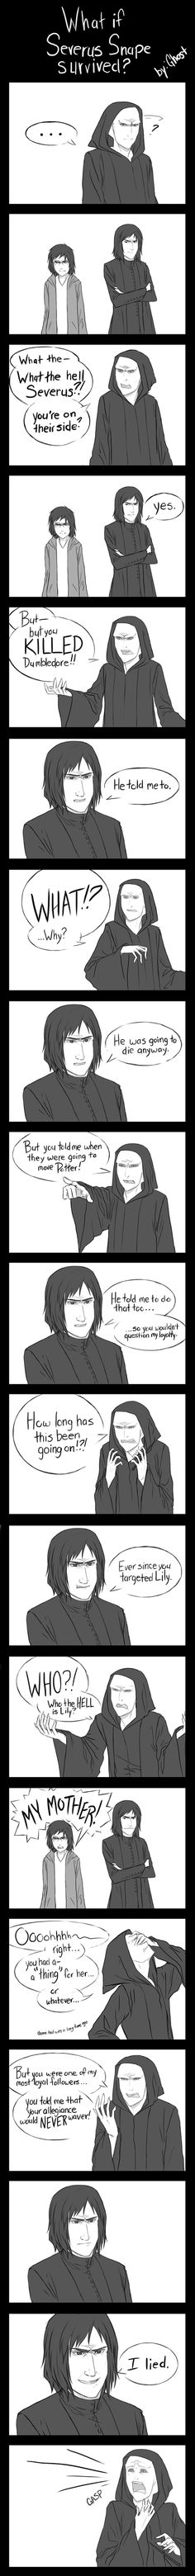 What if Snape Survived? - Imgur